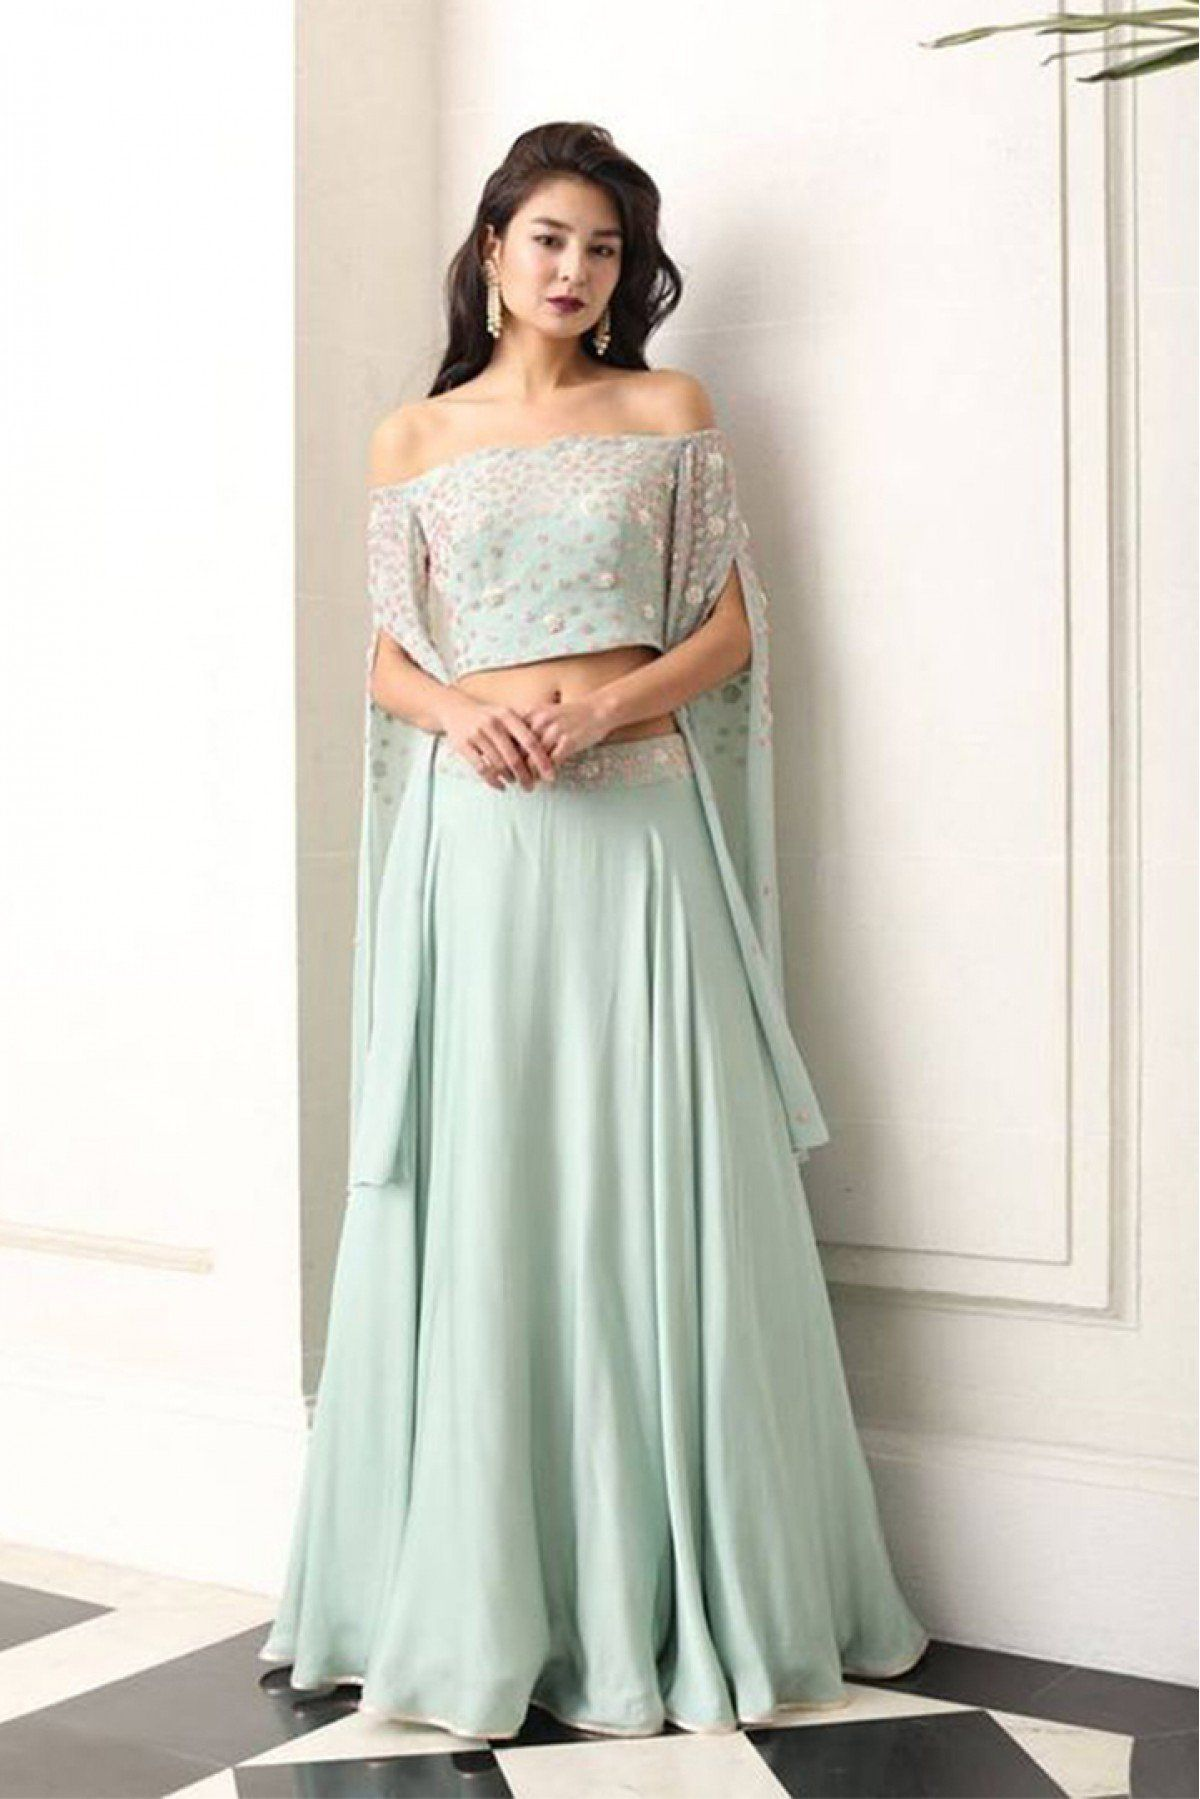 695710315ecdb Youdesign Georgette Skirt Top In Pastel Green Colour Size Upto 66 in ...